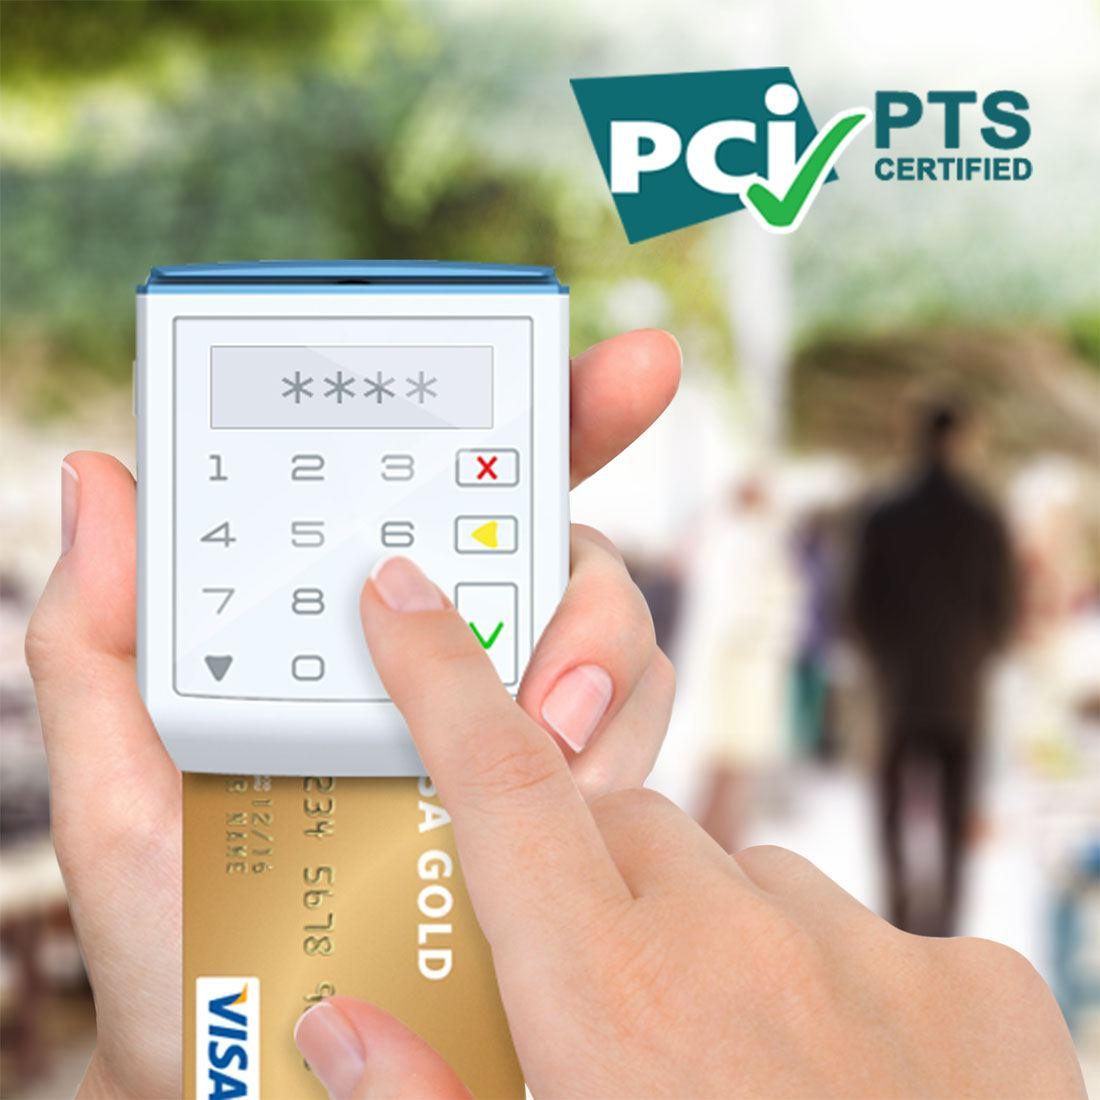 Chip-and-PIN mPOS Secures PCI PTS Certification